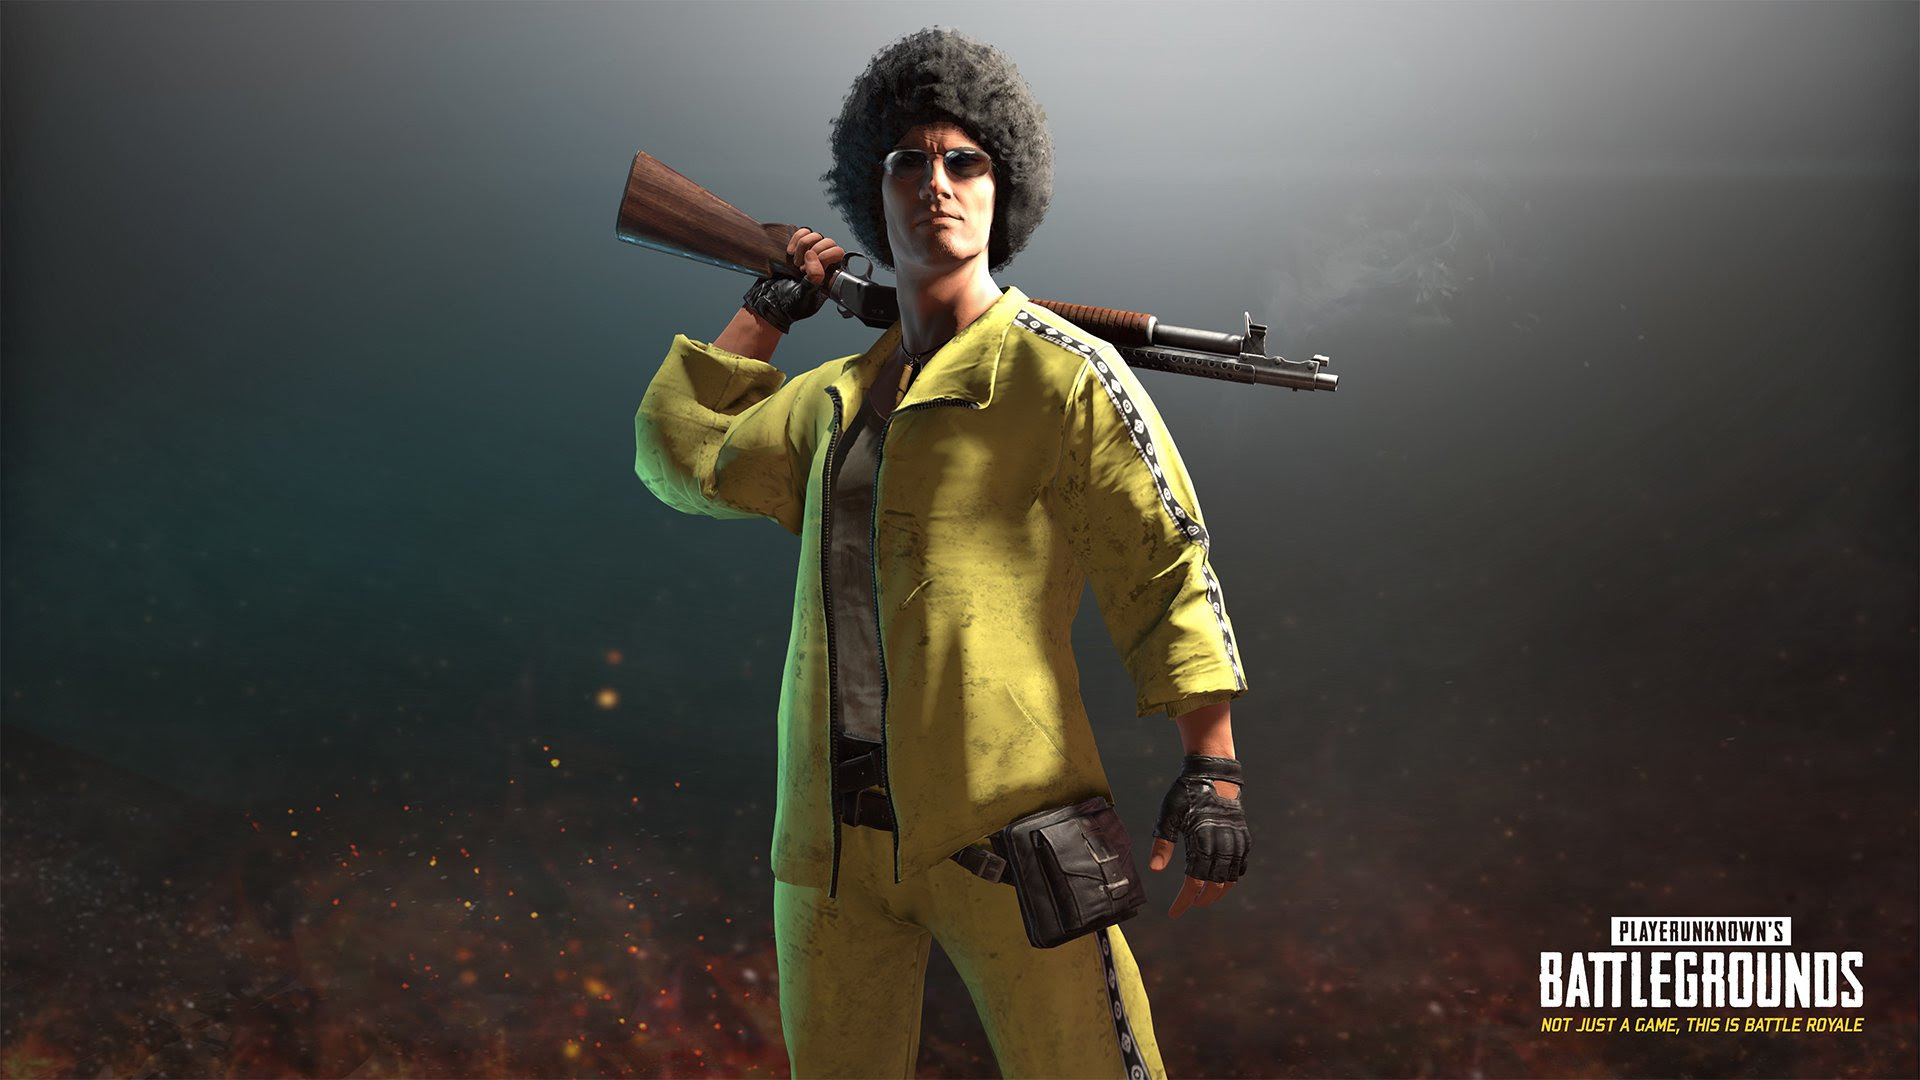 PUBG is getting some sweet Battle Royale-inspired skins screenshot